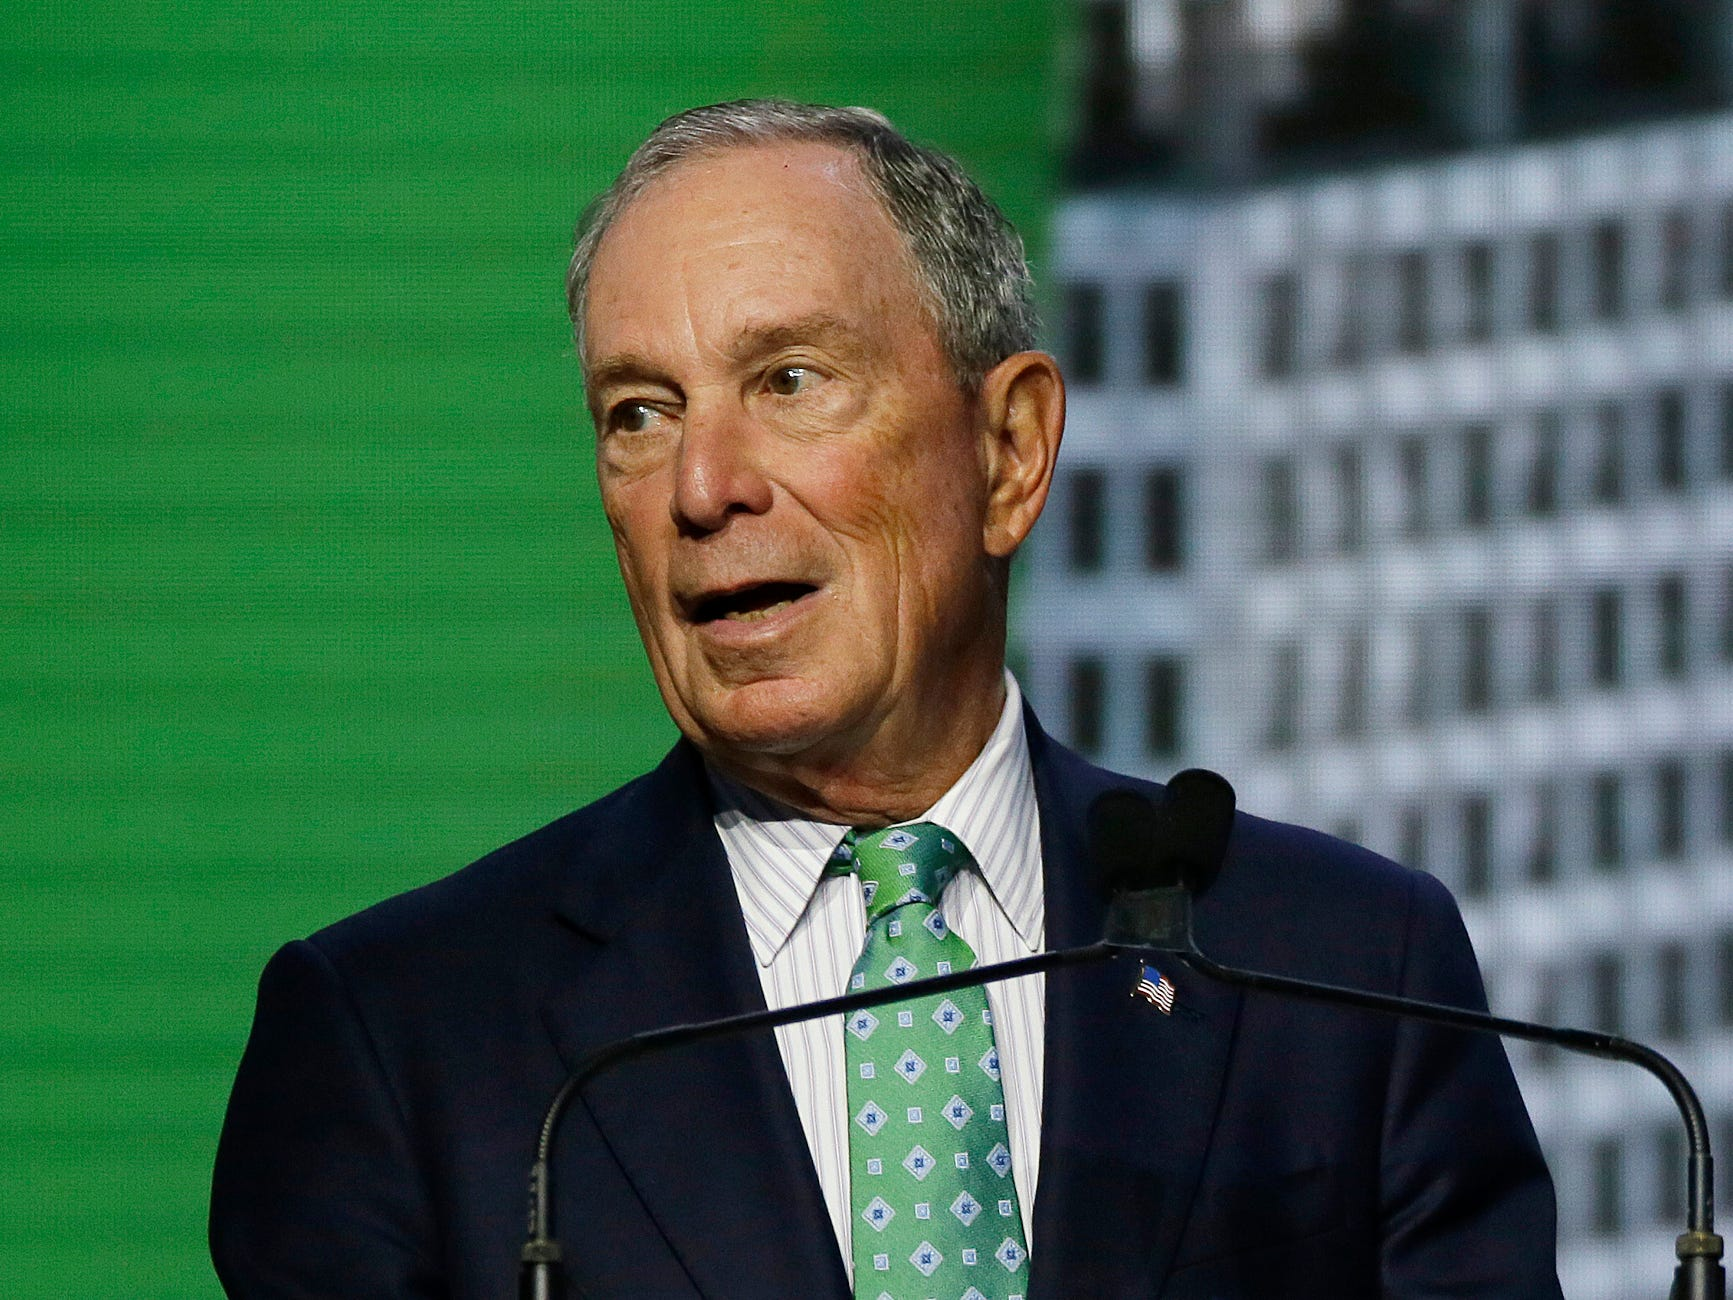 Michael Bloomberg, the UN Secretary-General's Special Envoy for Climate Action, speaks during the plenary session of the Global Action Climate Summit on Sept. 13, 2018, in San Francisco.